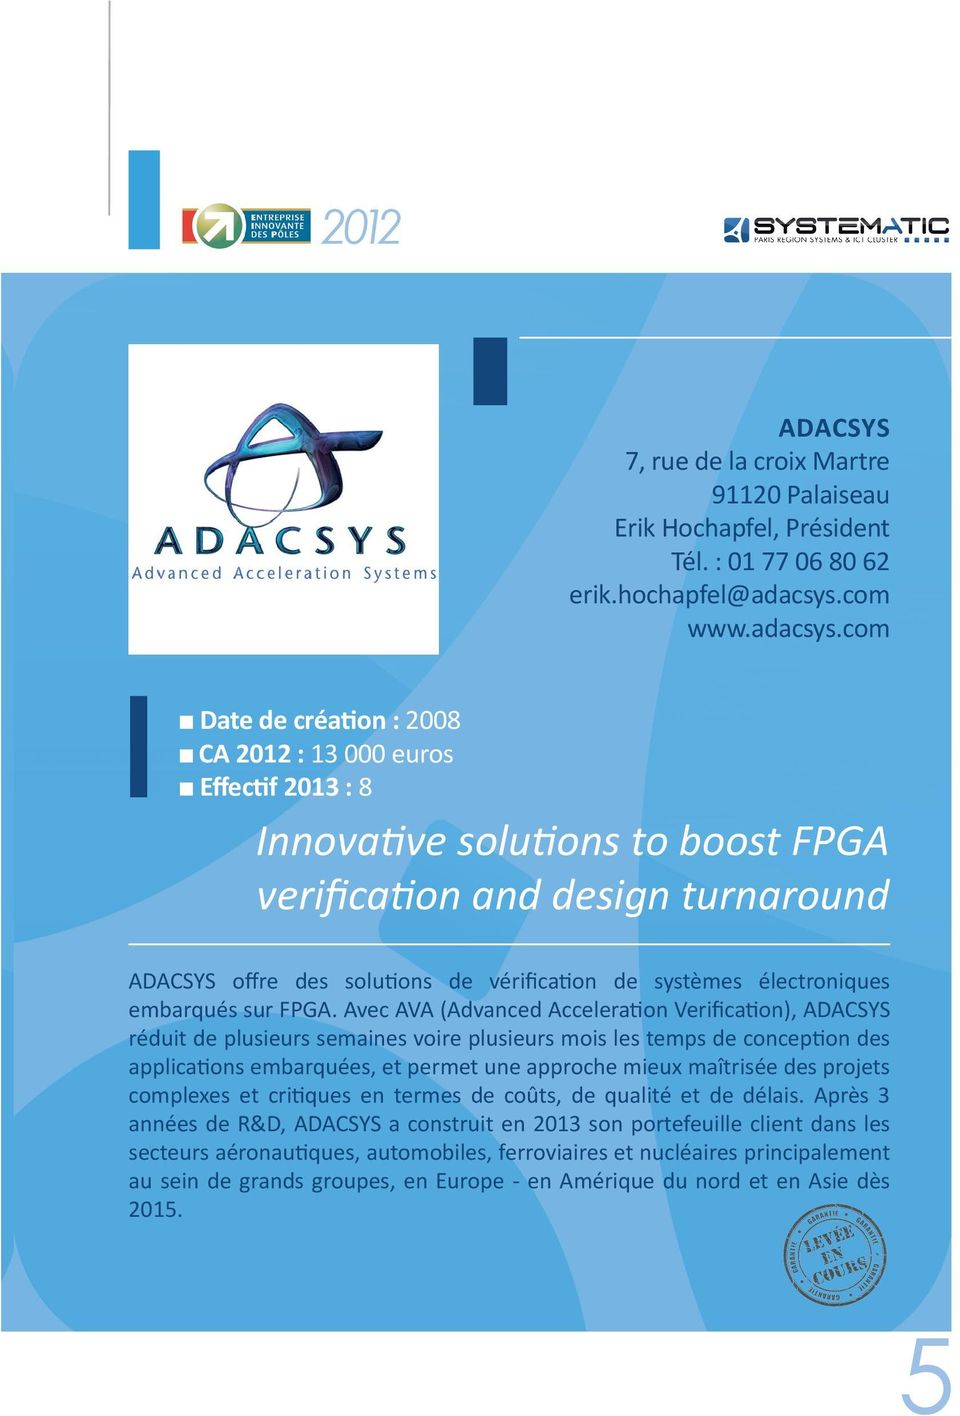 com n Date de création : 2008 n CA 2012 : 13 000 euros n Effectif 2013 : 8 Innovative solutions to boost FPGA verification and design turnaround ADACSYS offre des solutions de vérification de